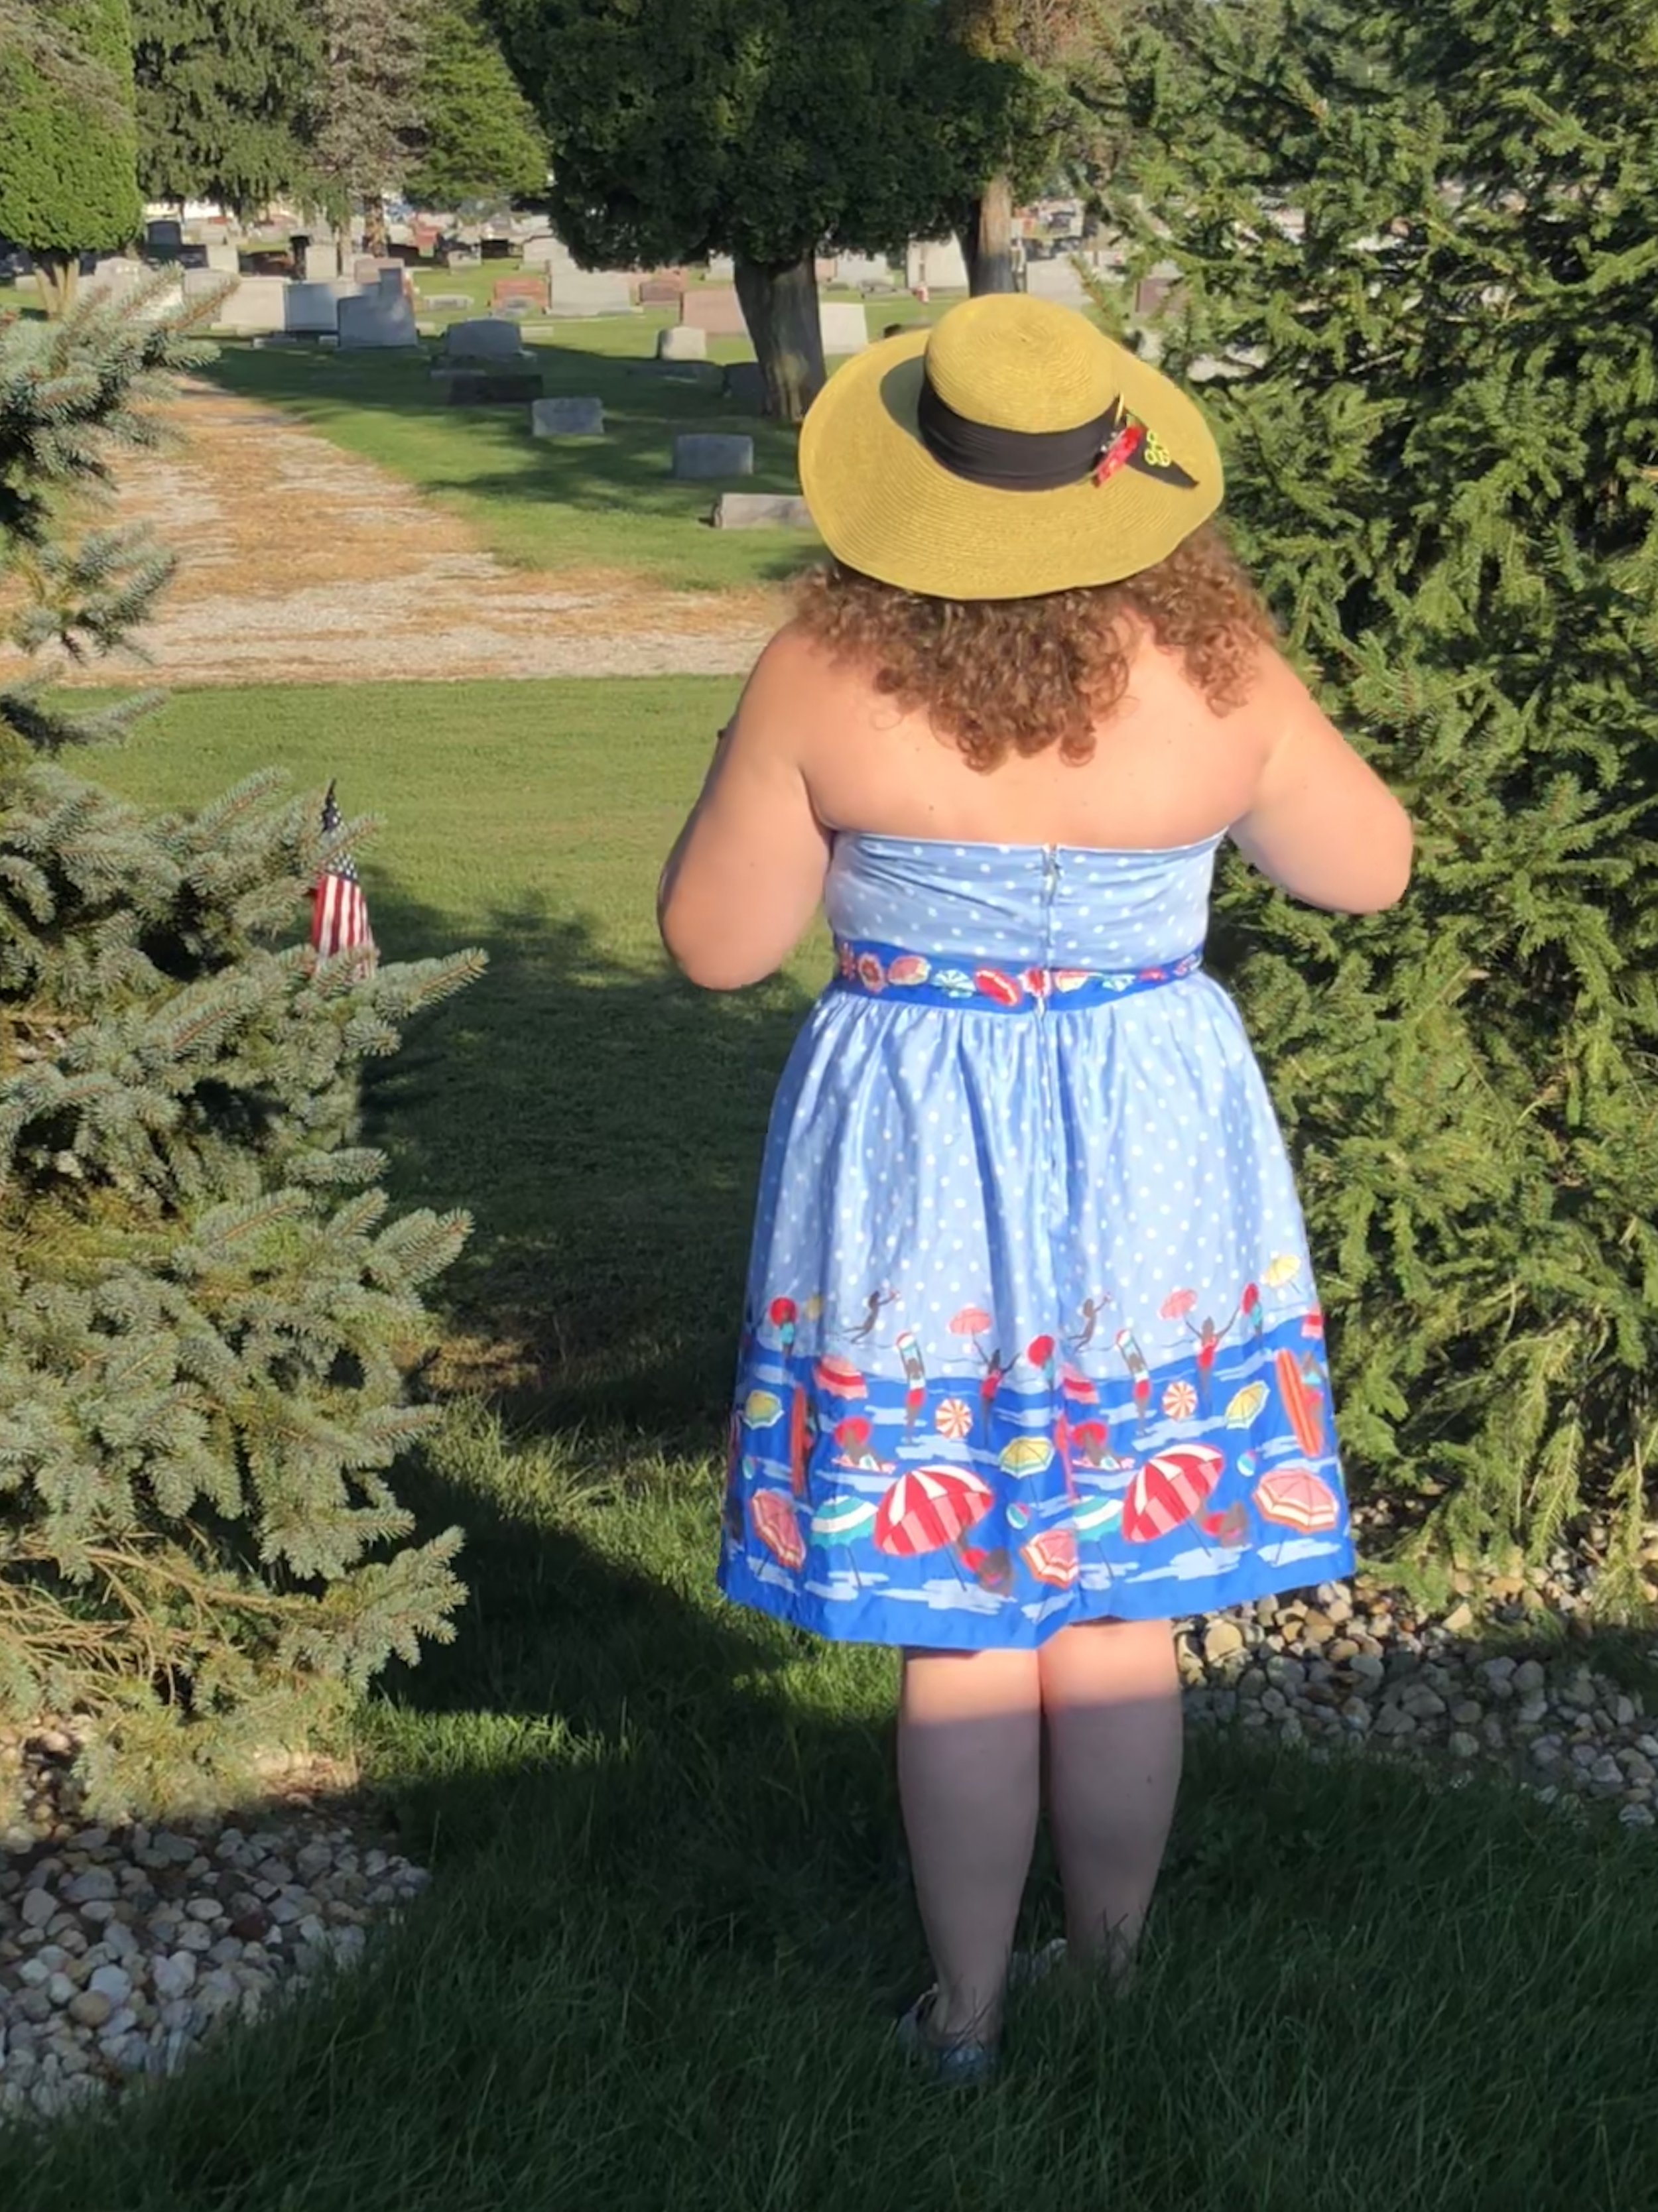 A woman with curly auburn hair wearing a sun hat, and a blue polka dotted dress with pin ups at the beach printed on it. A cemetery lies behind her.